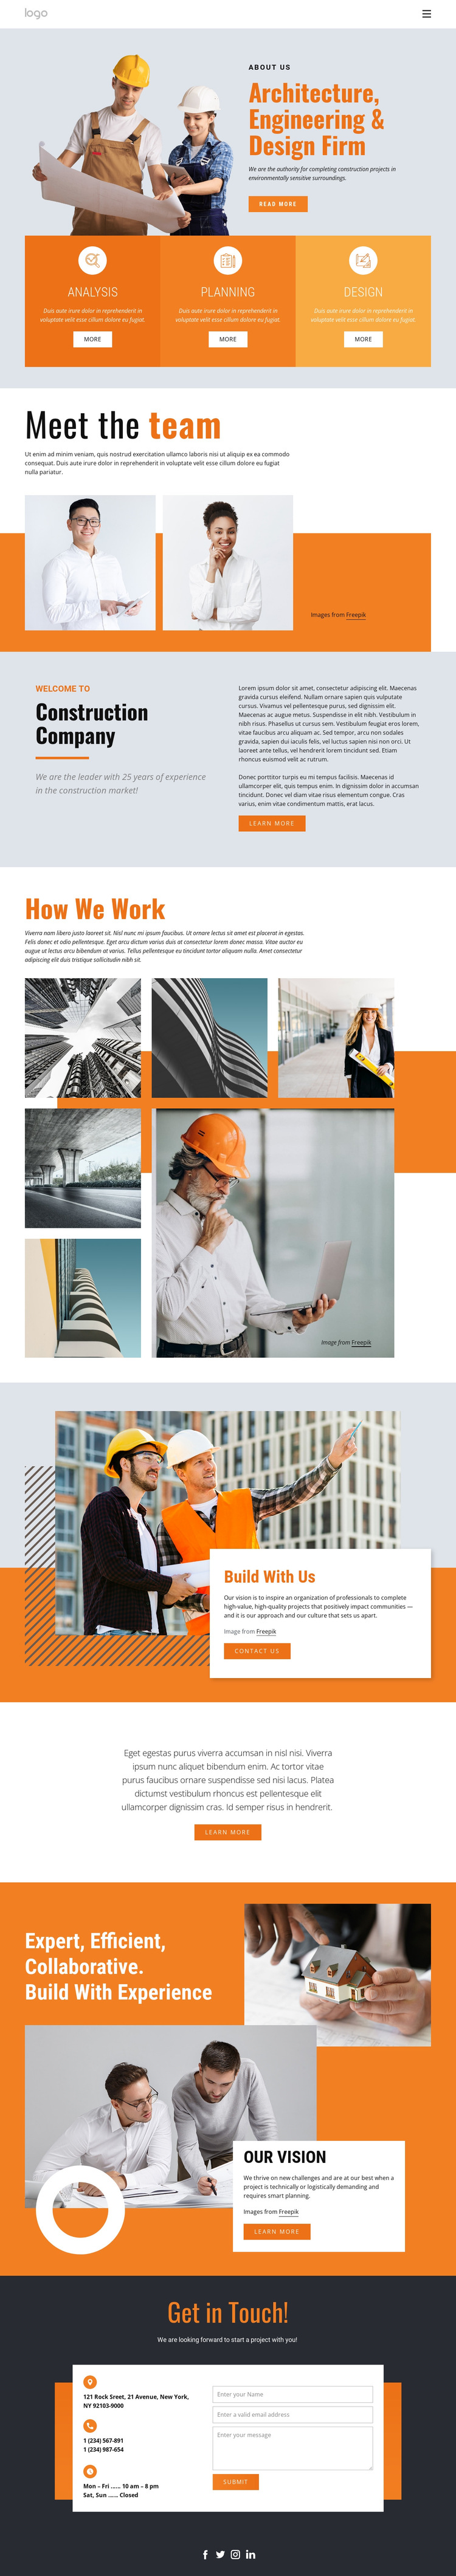 Engineering firm HTML5 Template